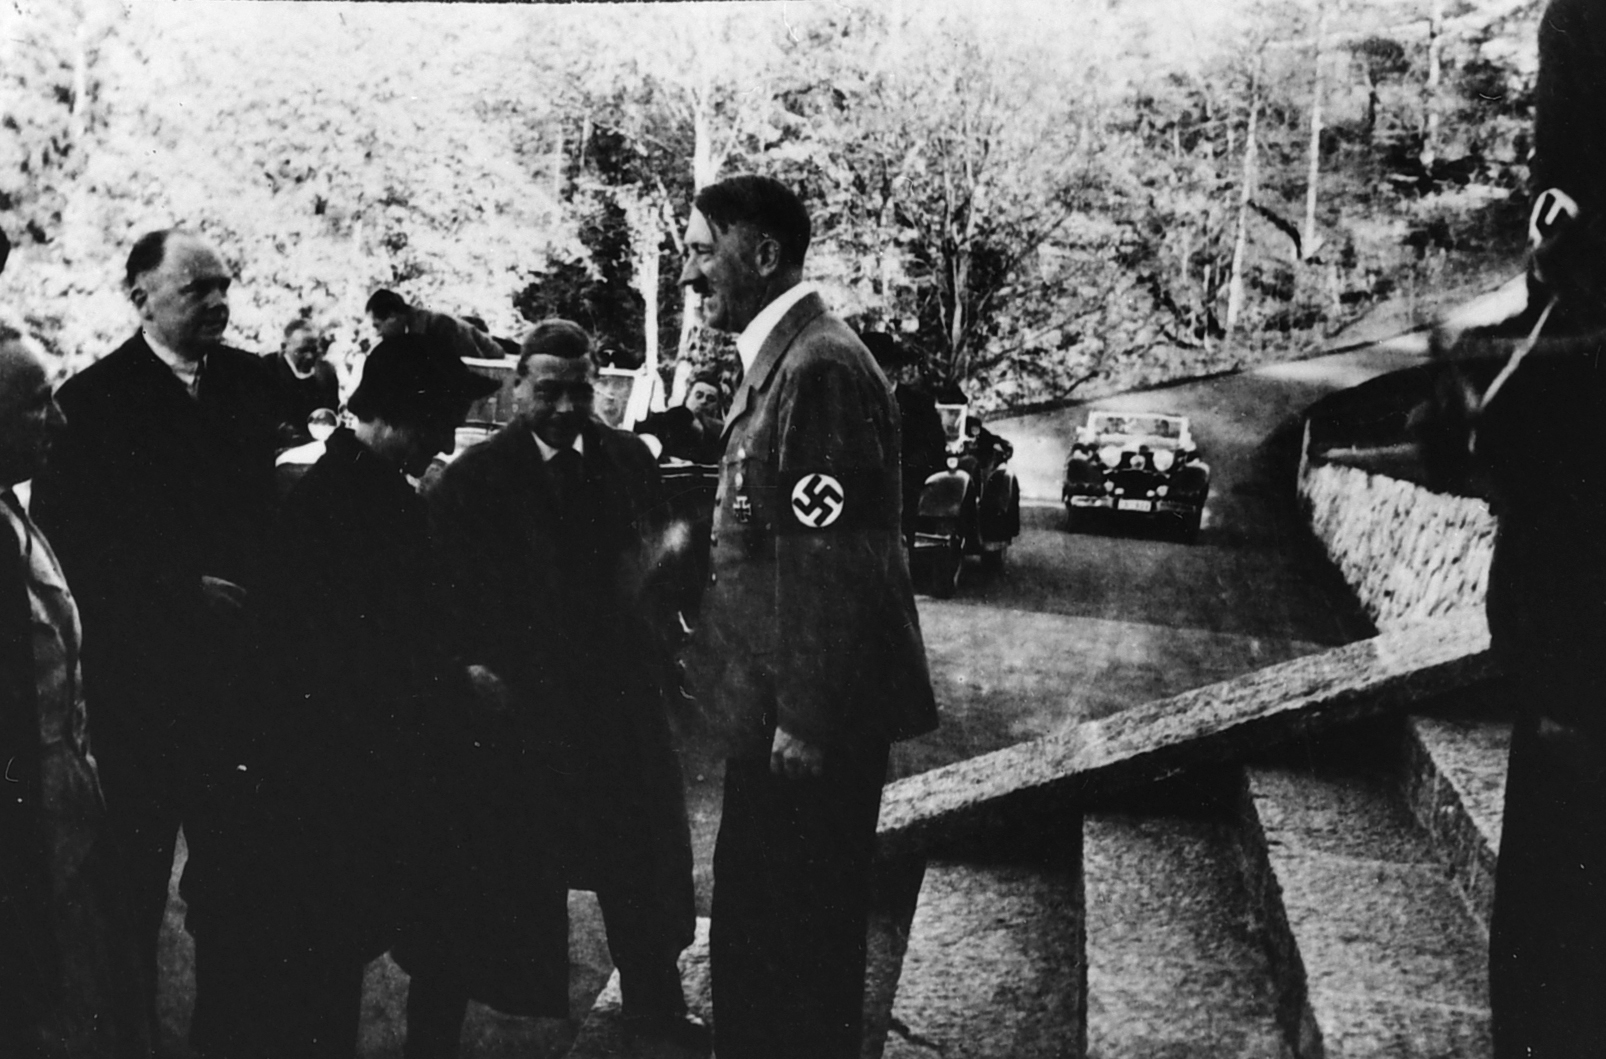 Adolf Hitler welcomes the Duke and Duchess of Windsor at the Berghof